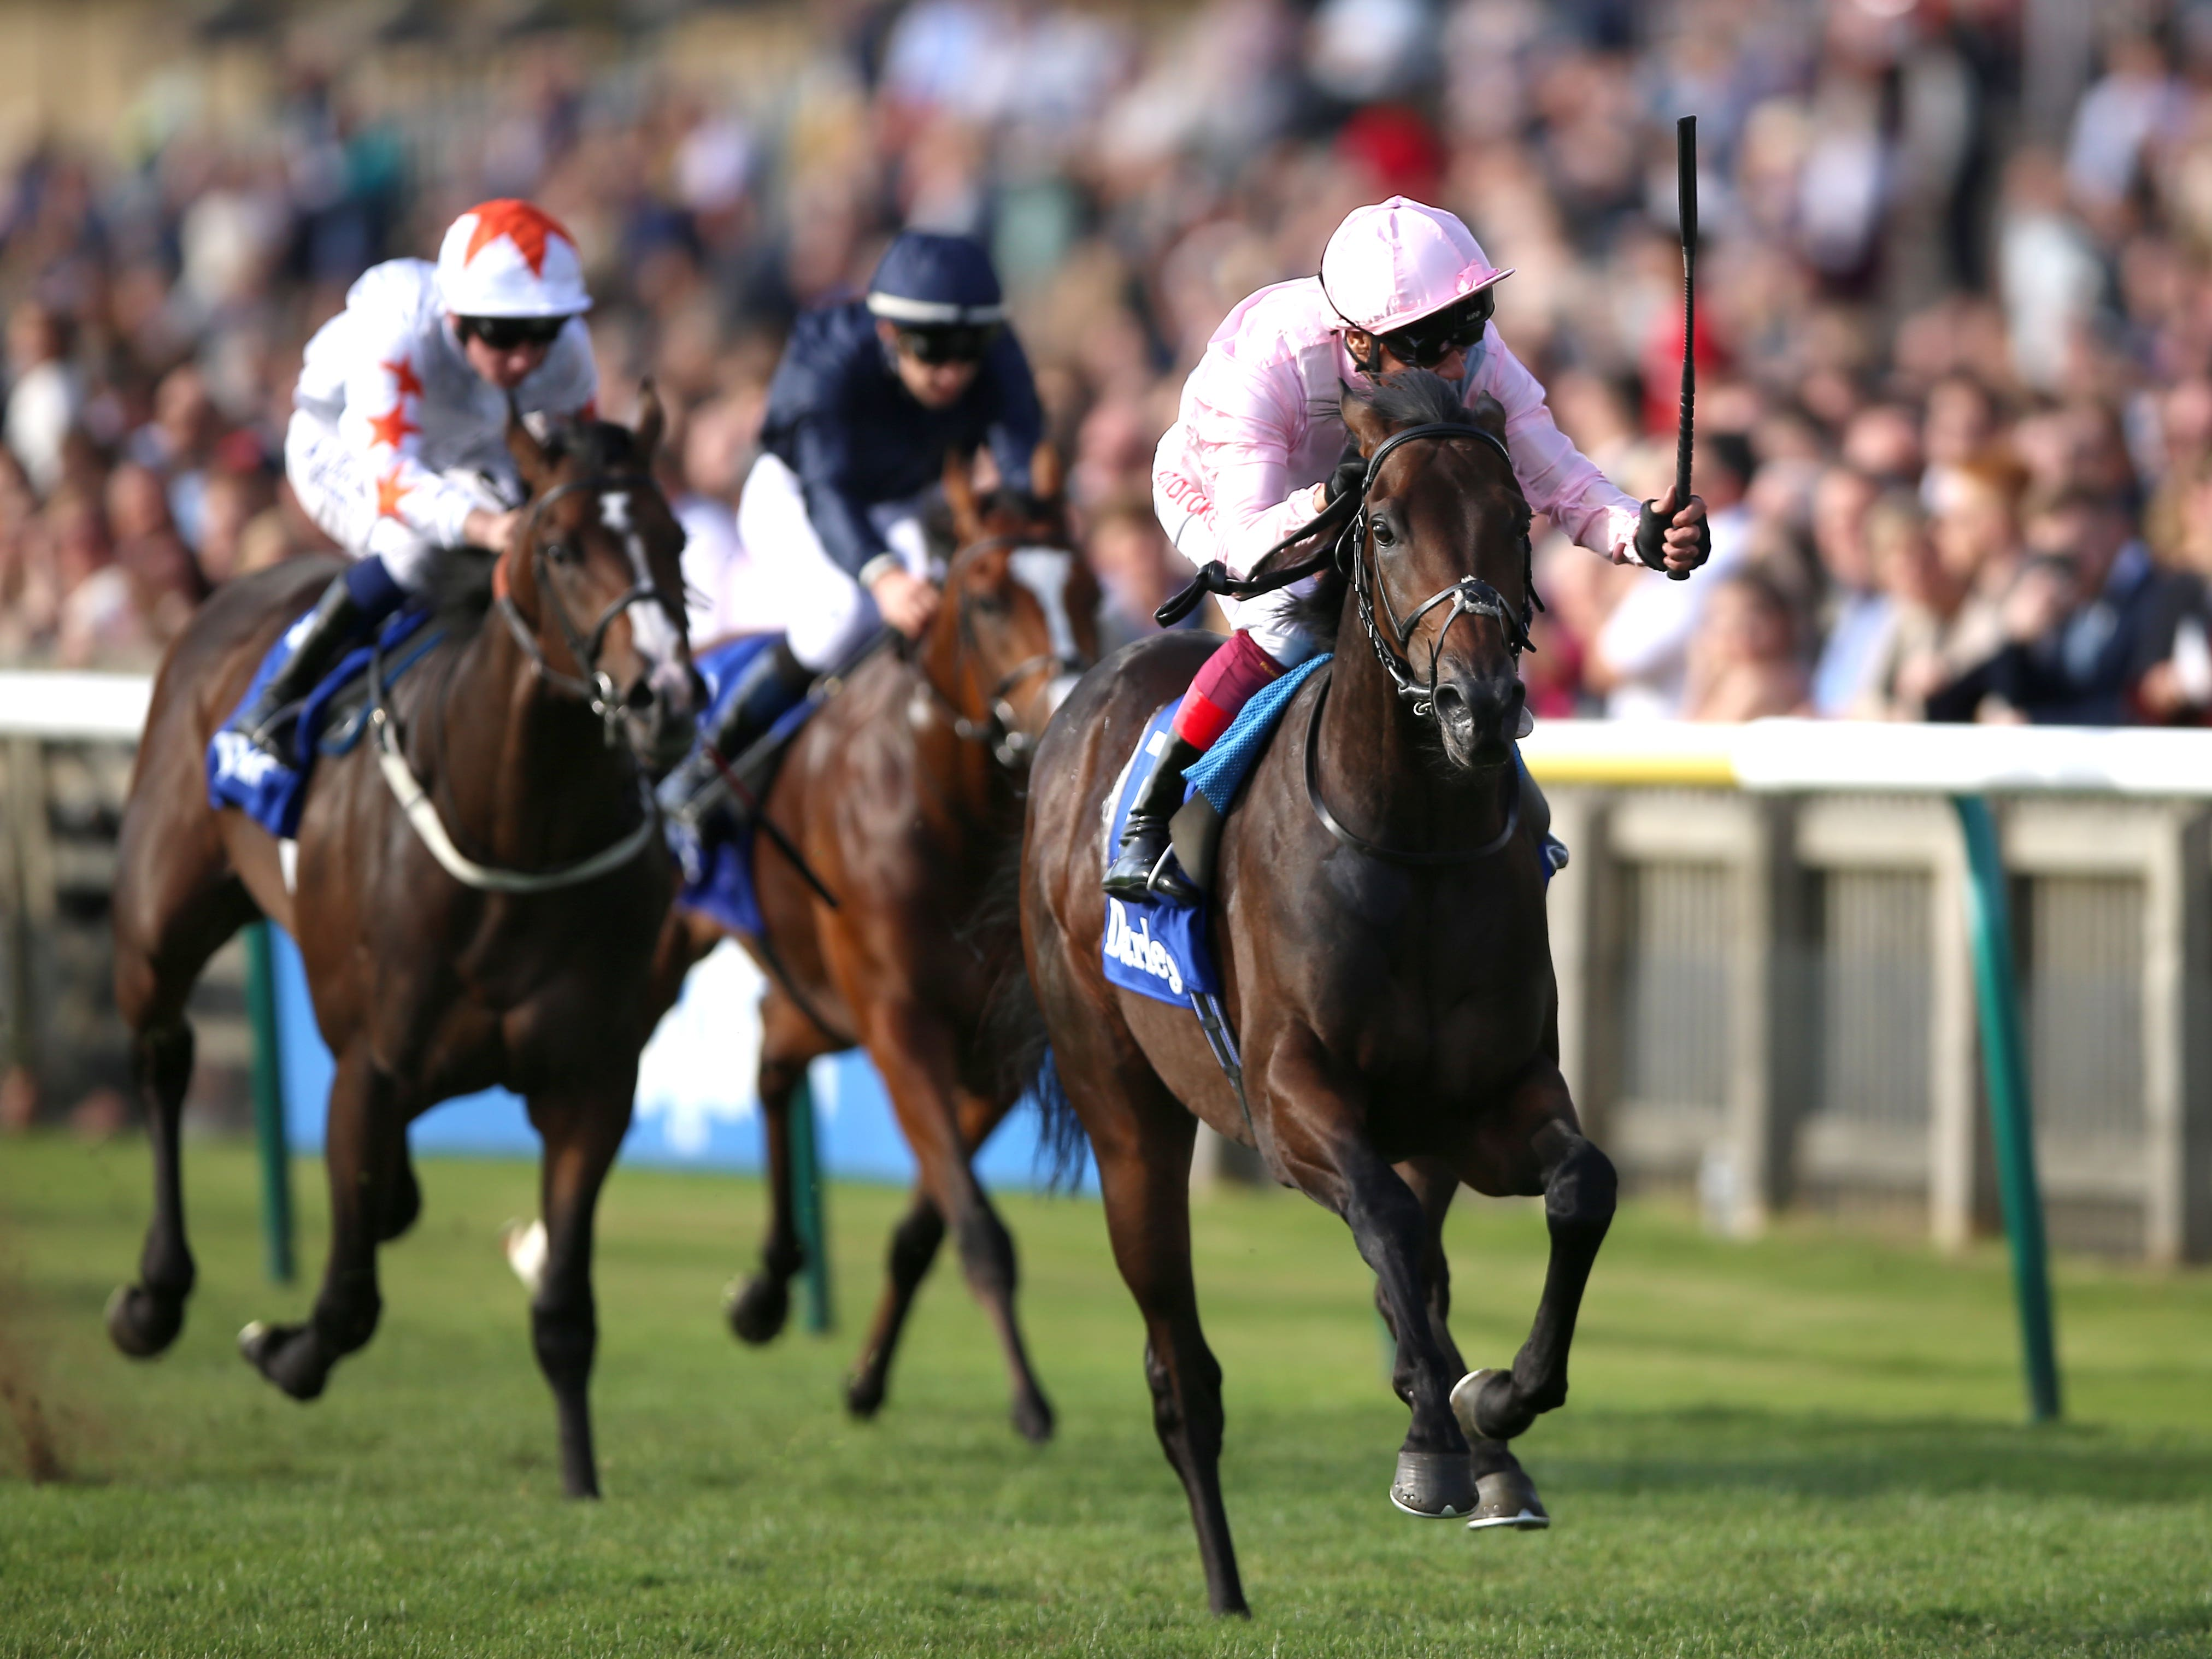 Too Darn Hot and Frankie Dettori on the way to winning the Dewhurst Stakes (Nigel French/PA)